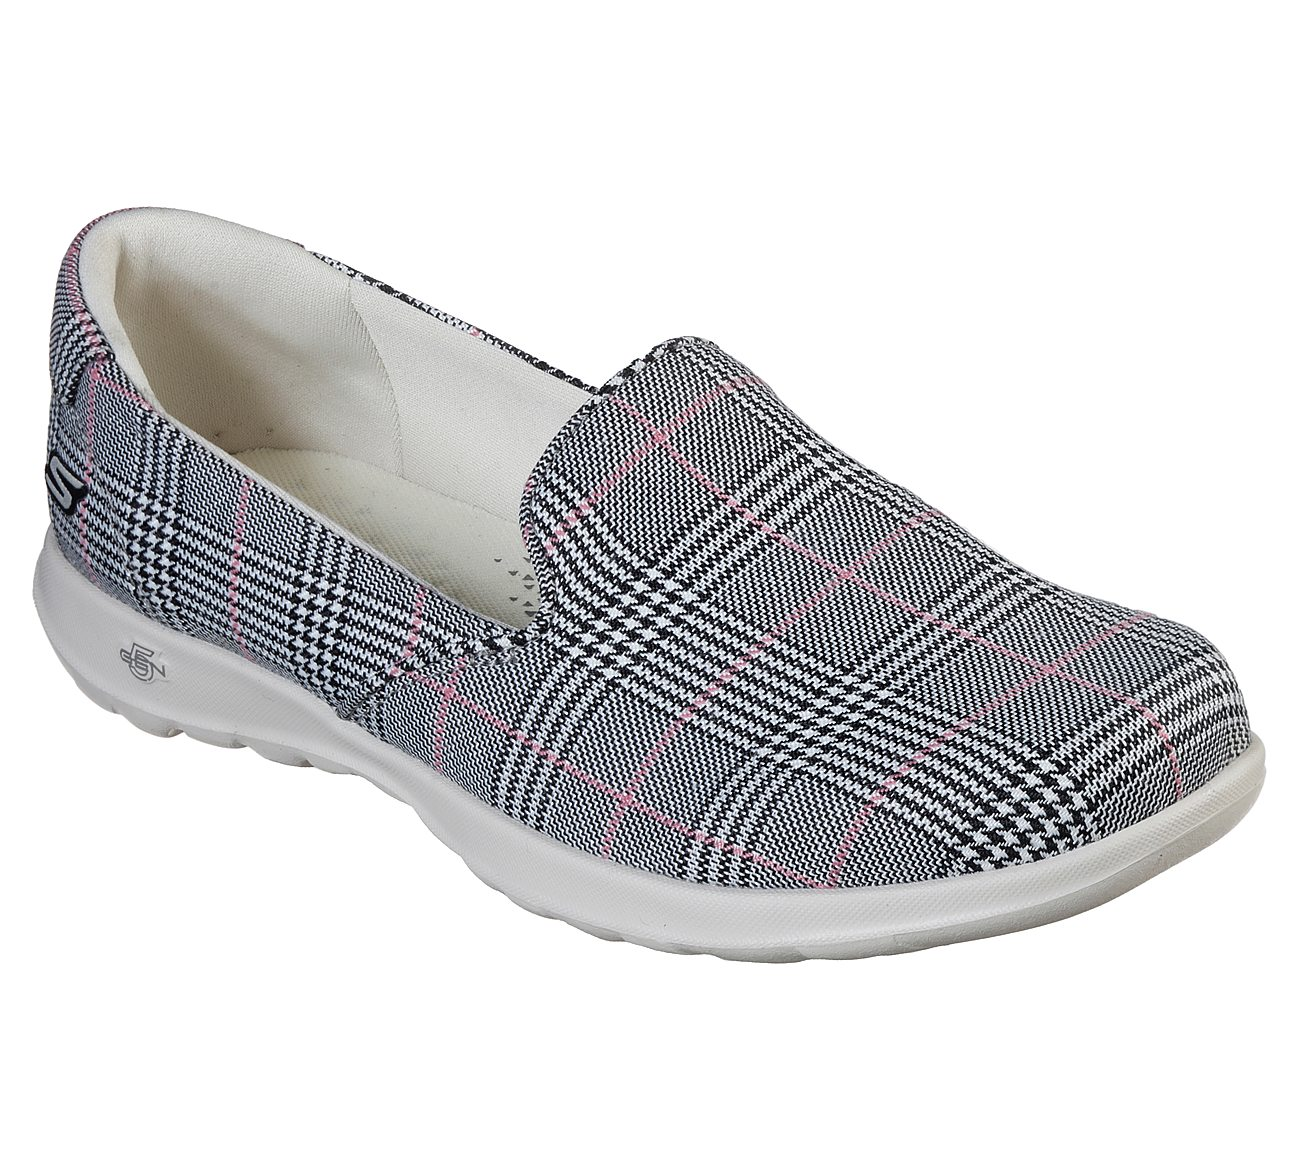 Skechers GOwalk Lite - Chic